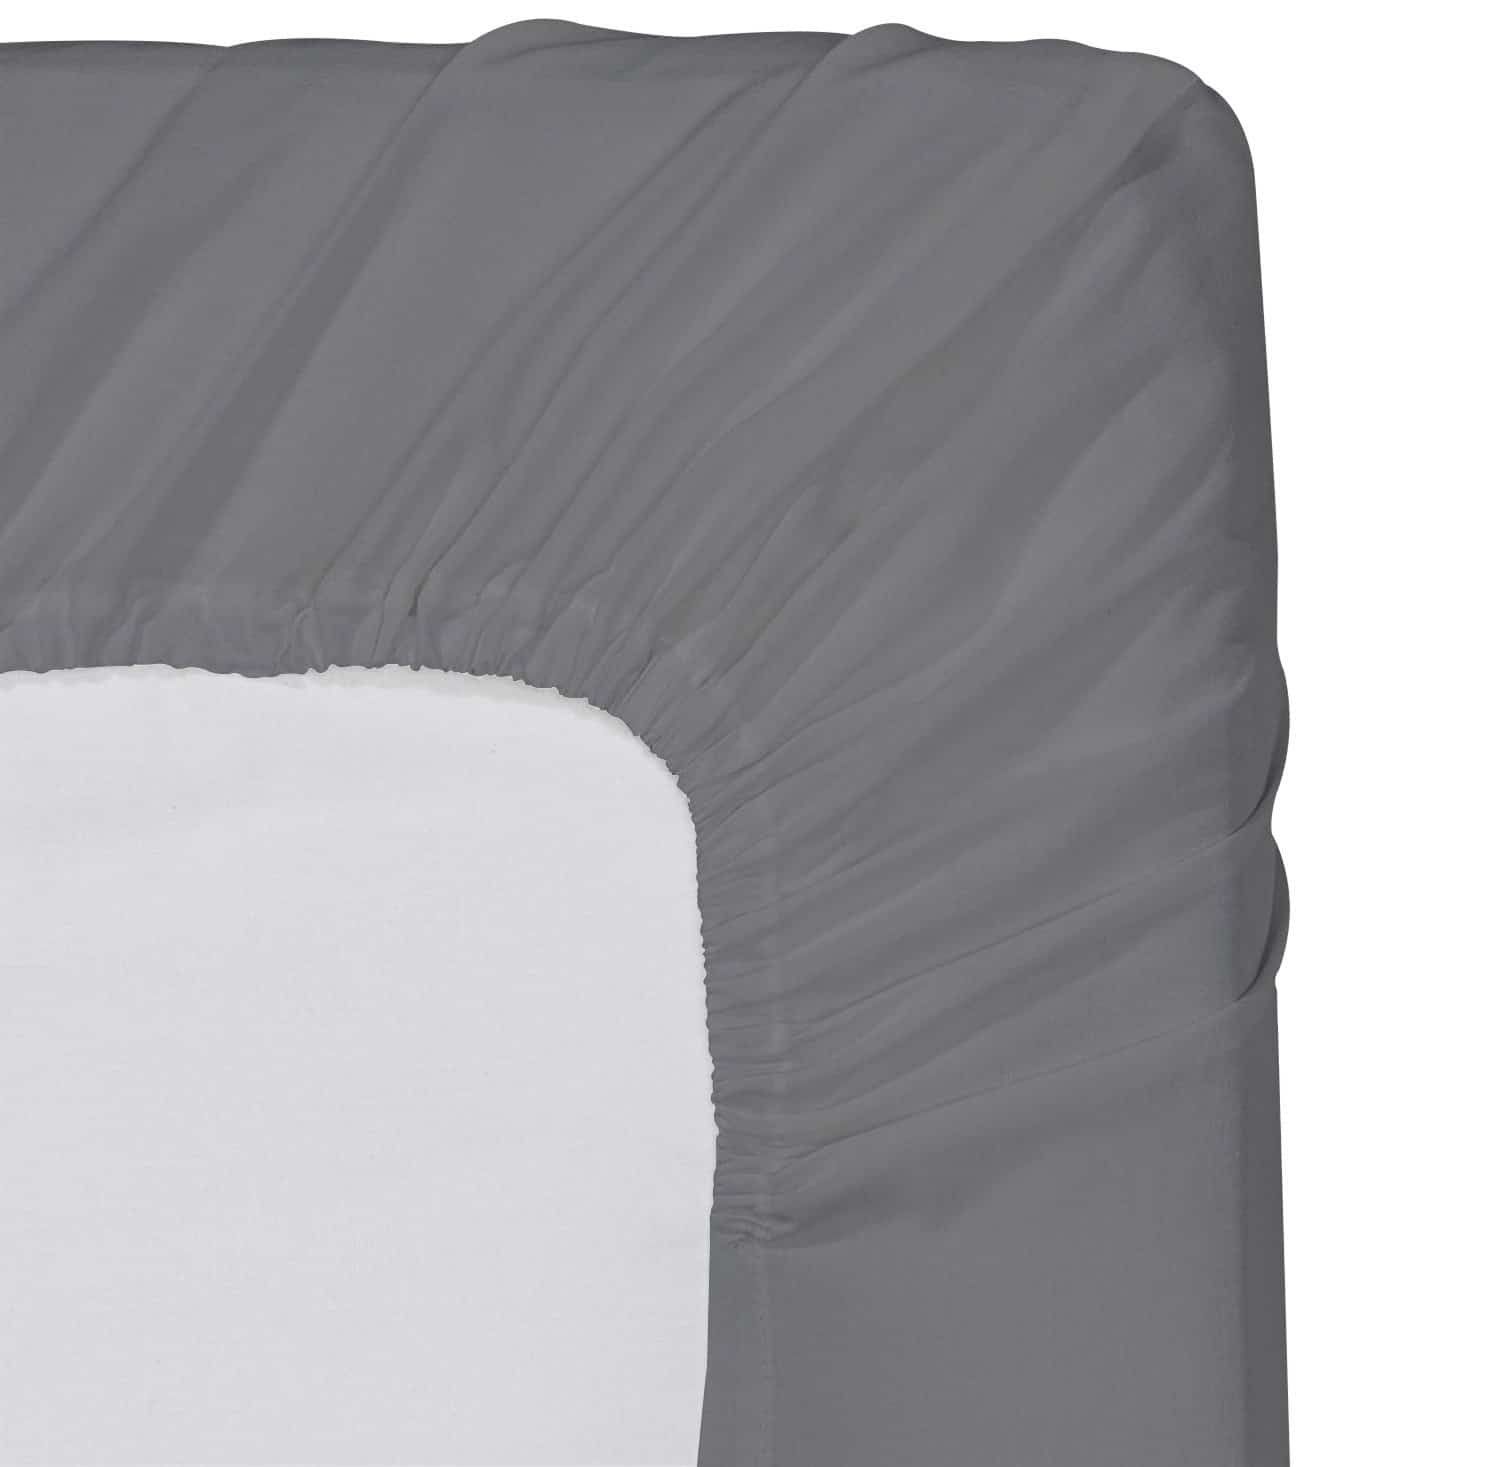 Best Microfiber Queen Sheets With Deep Pockets